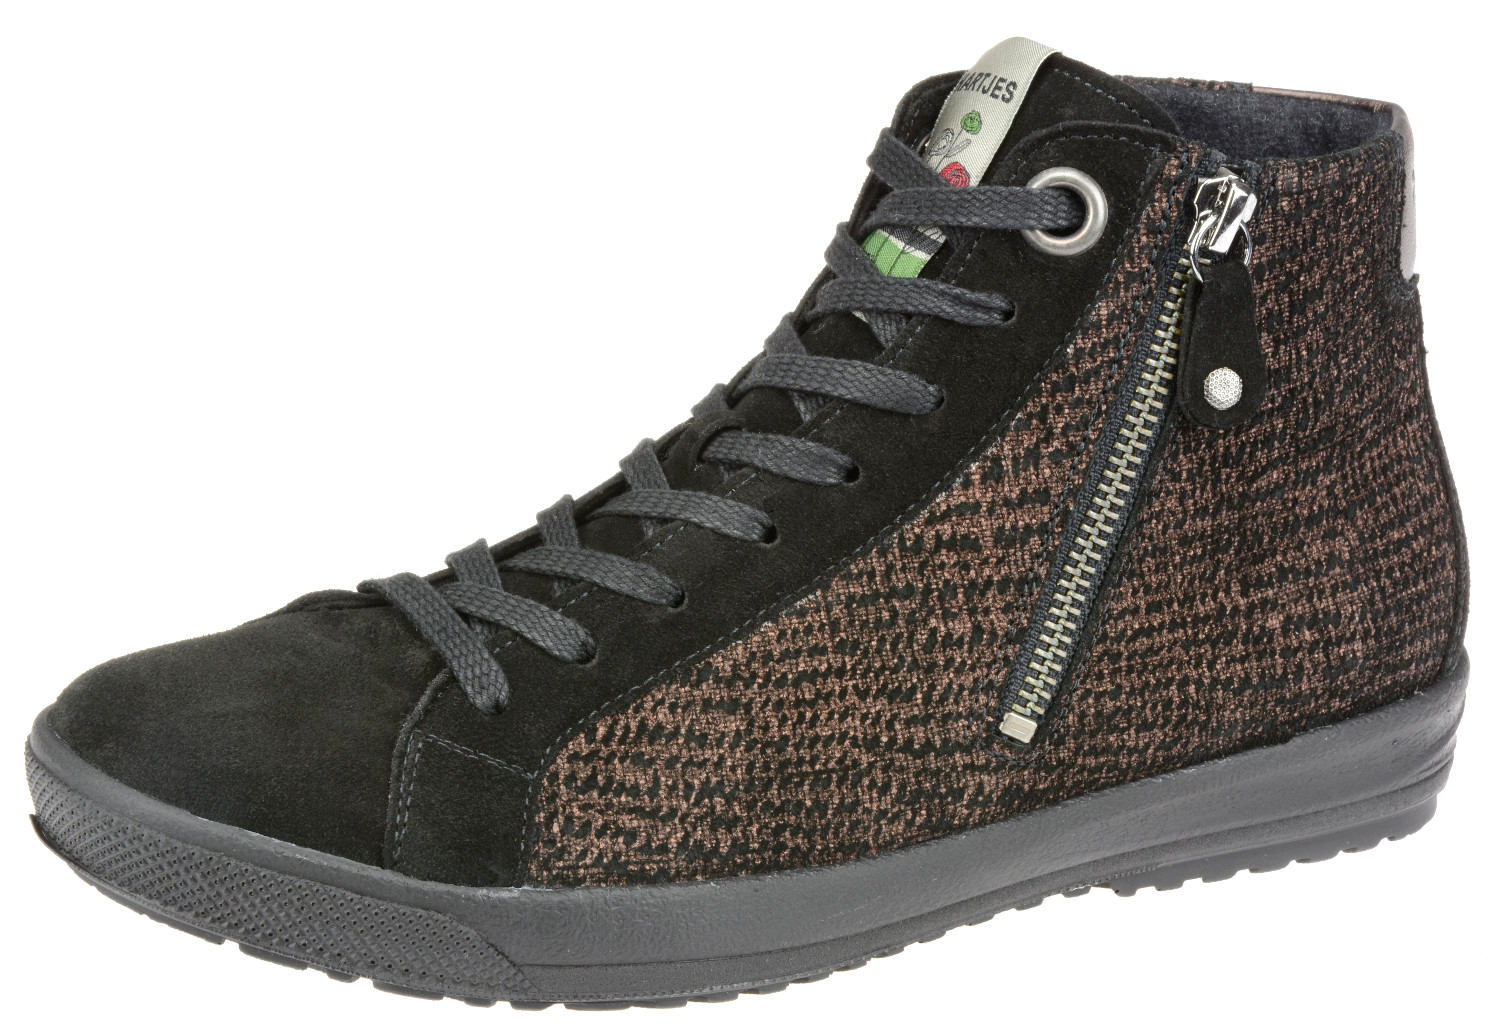 Hartjes 48072 Cup Boot in Black